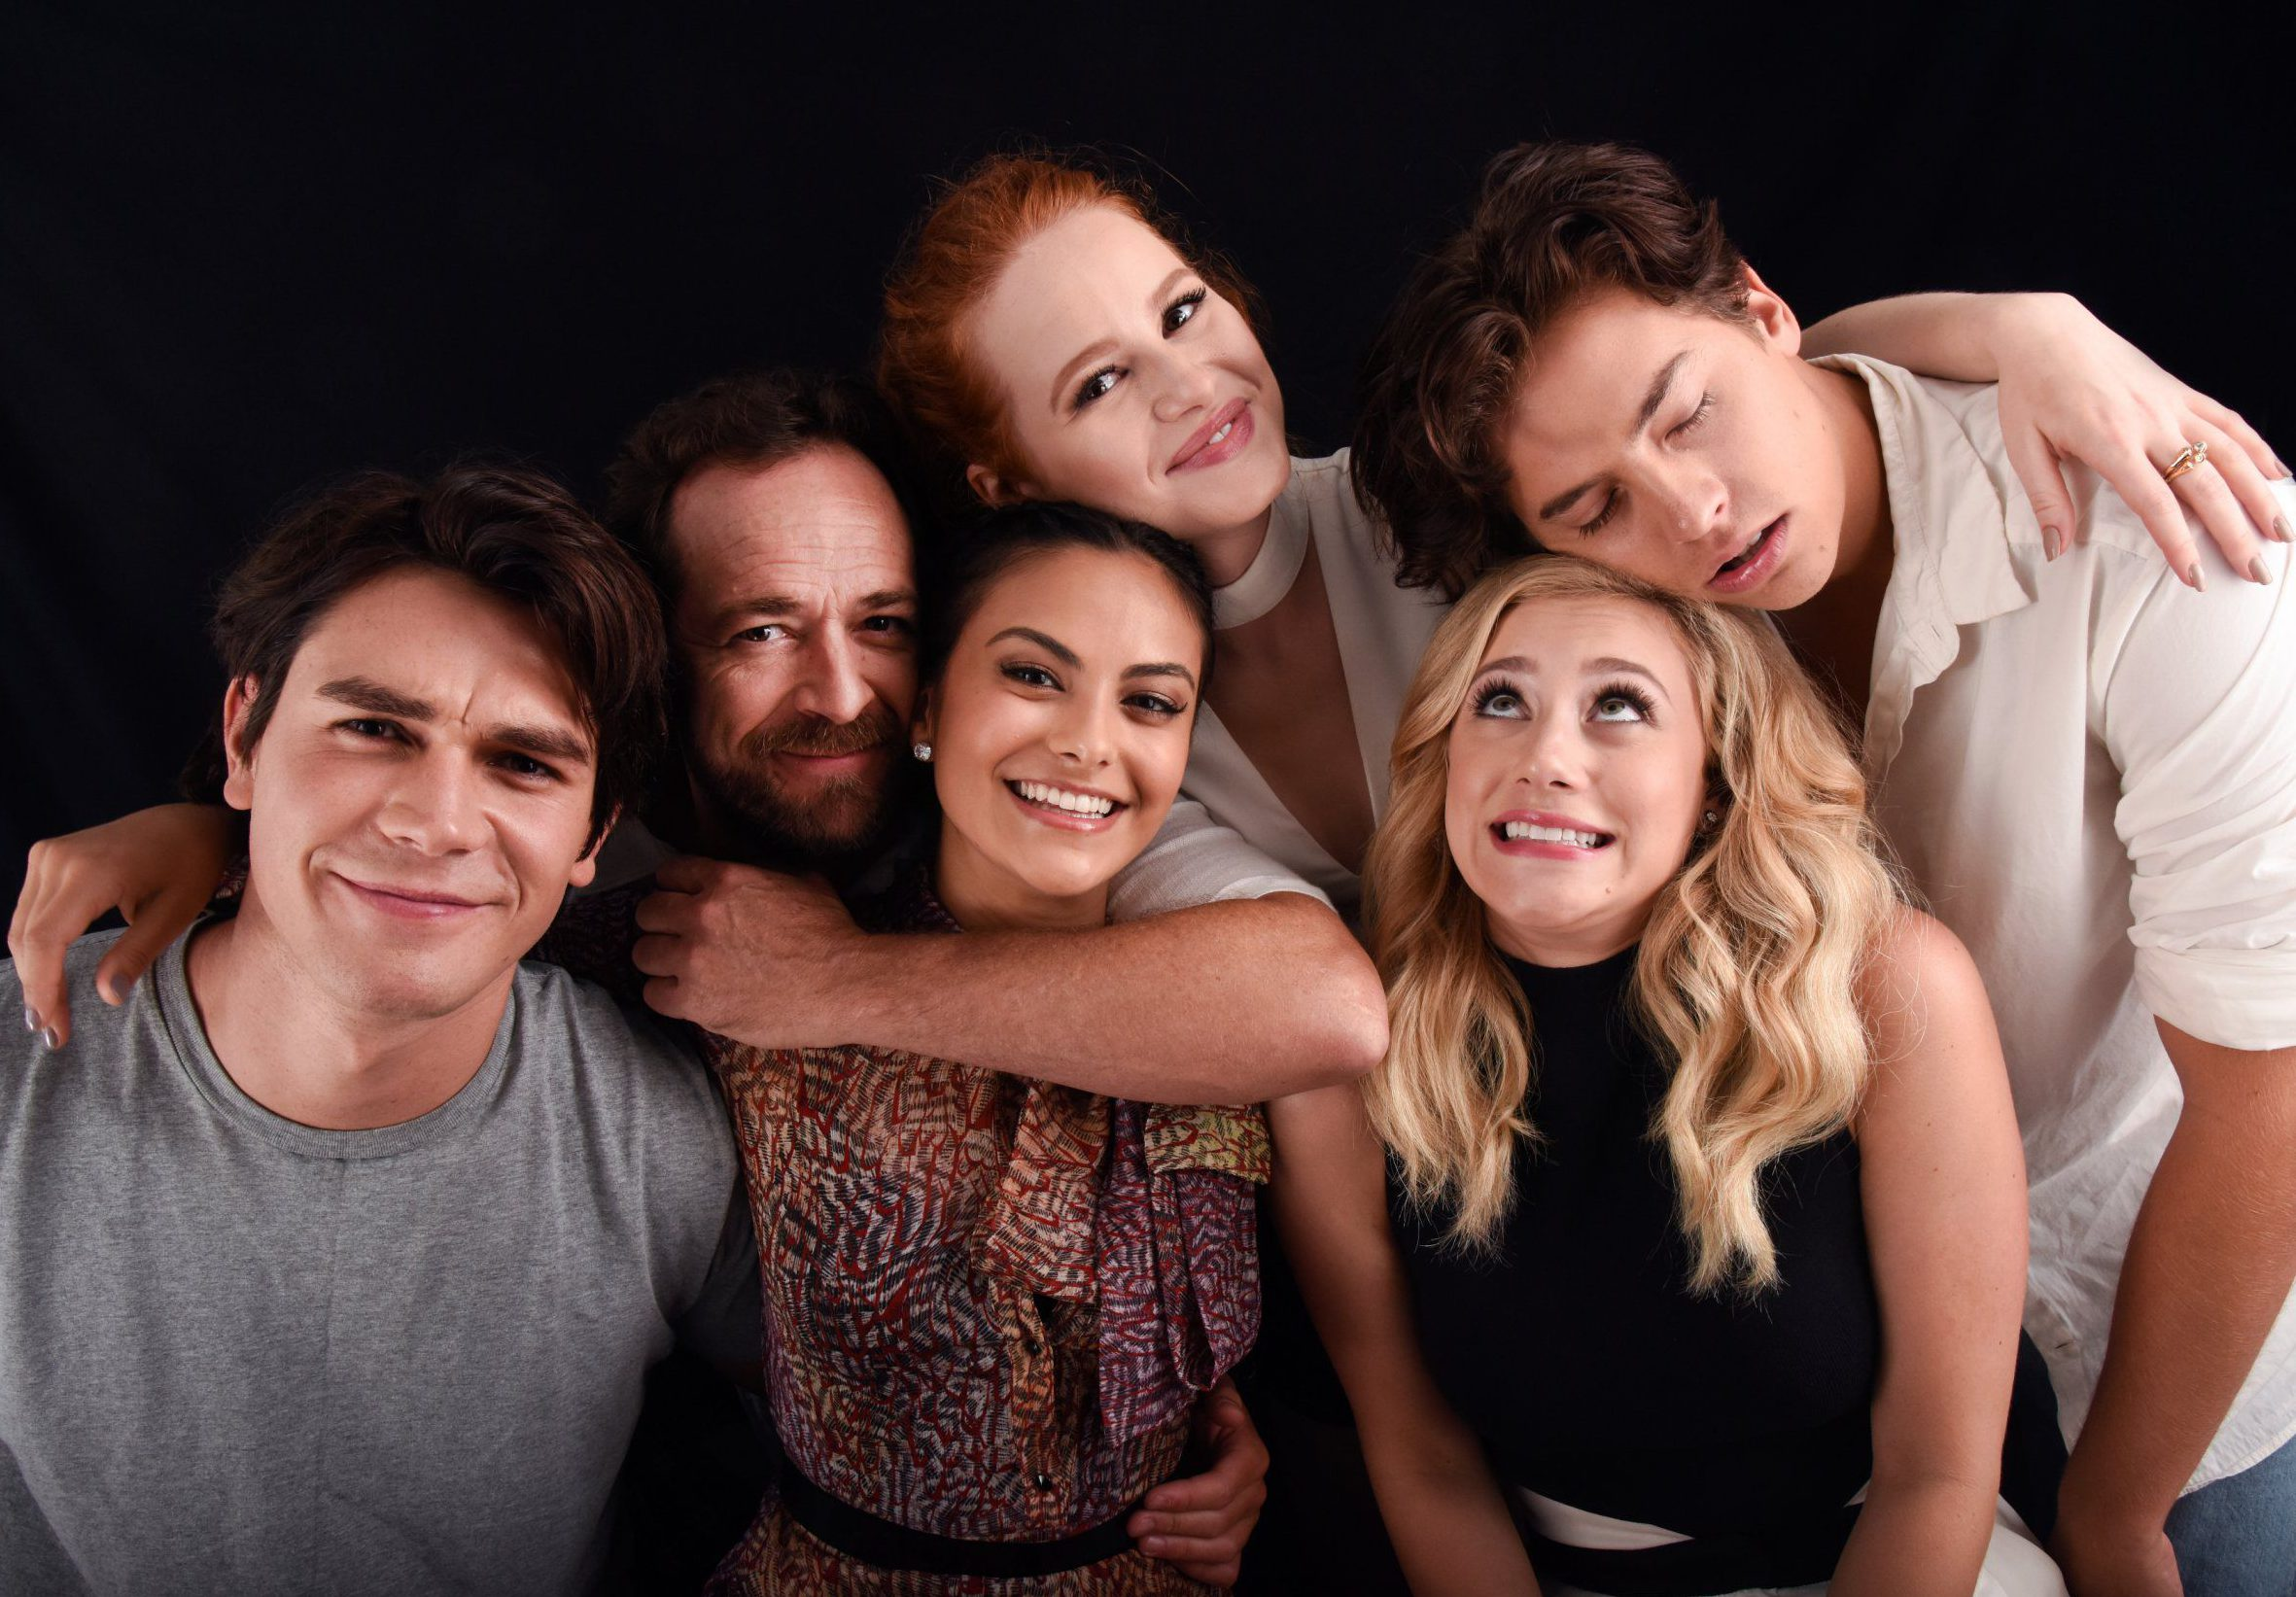 Mandatory Credit: Photo by Stephen Lovekin/TVLine/REX/Shutterstock (5780835bk)nLuke Perry, K.J. Apa, Madelaine Petsch, Camila Mendes, Cole Sprouse and Lili Reinhart from the cast of 'Riverdale'nPortrait Studio, Day 3, Comic-Con International, San Diego, USA - 23 Jul 2016nn